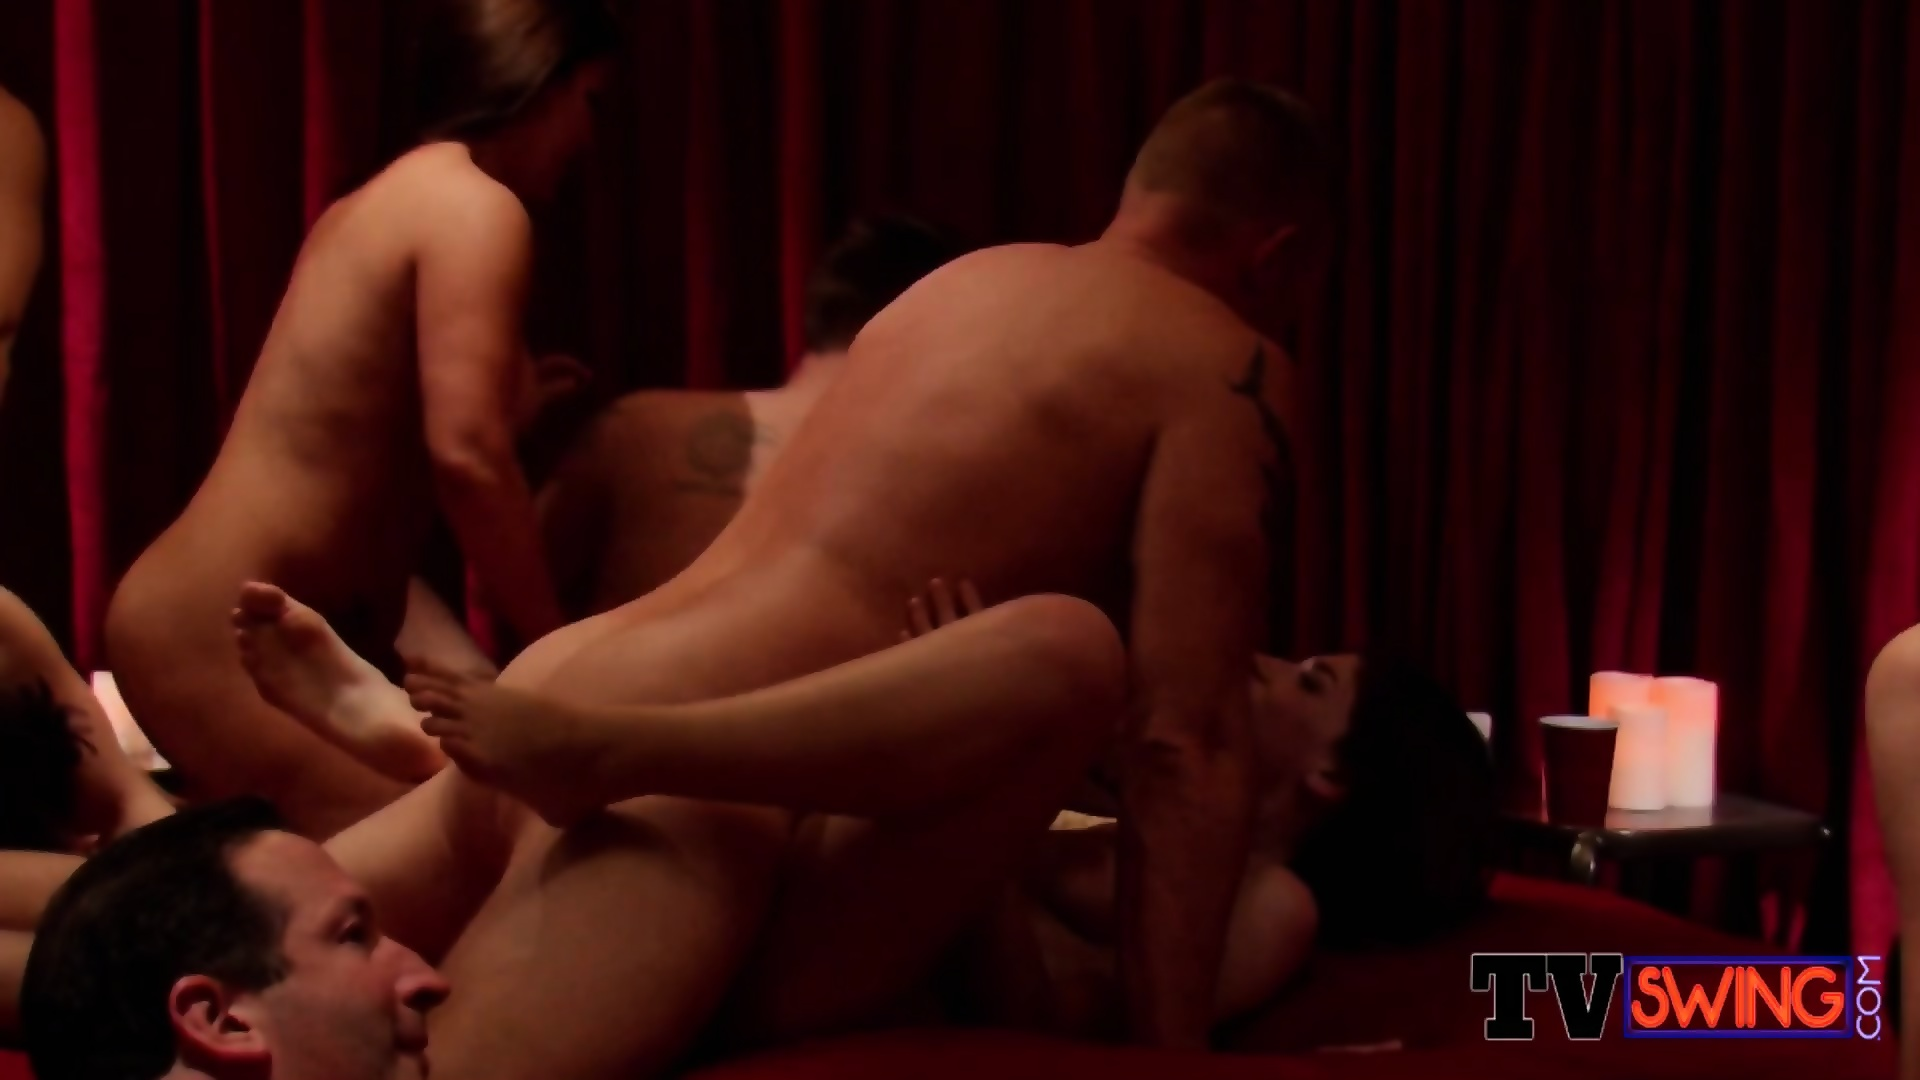 cleared mature woman fucking with big natural boobs wifey confirm. And